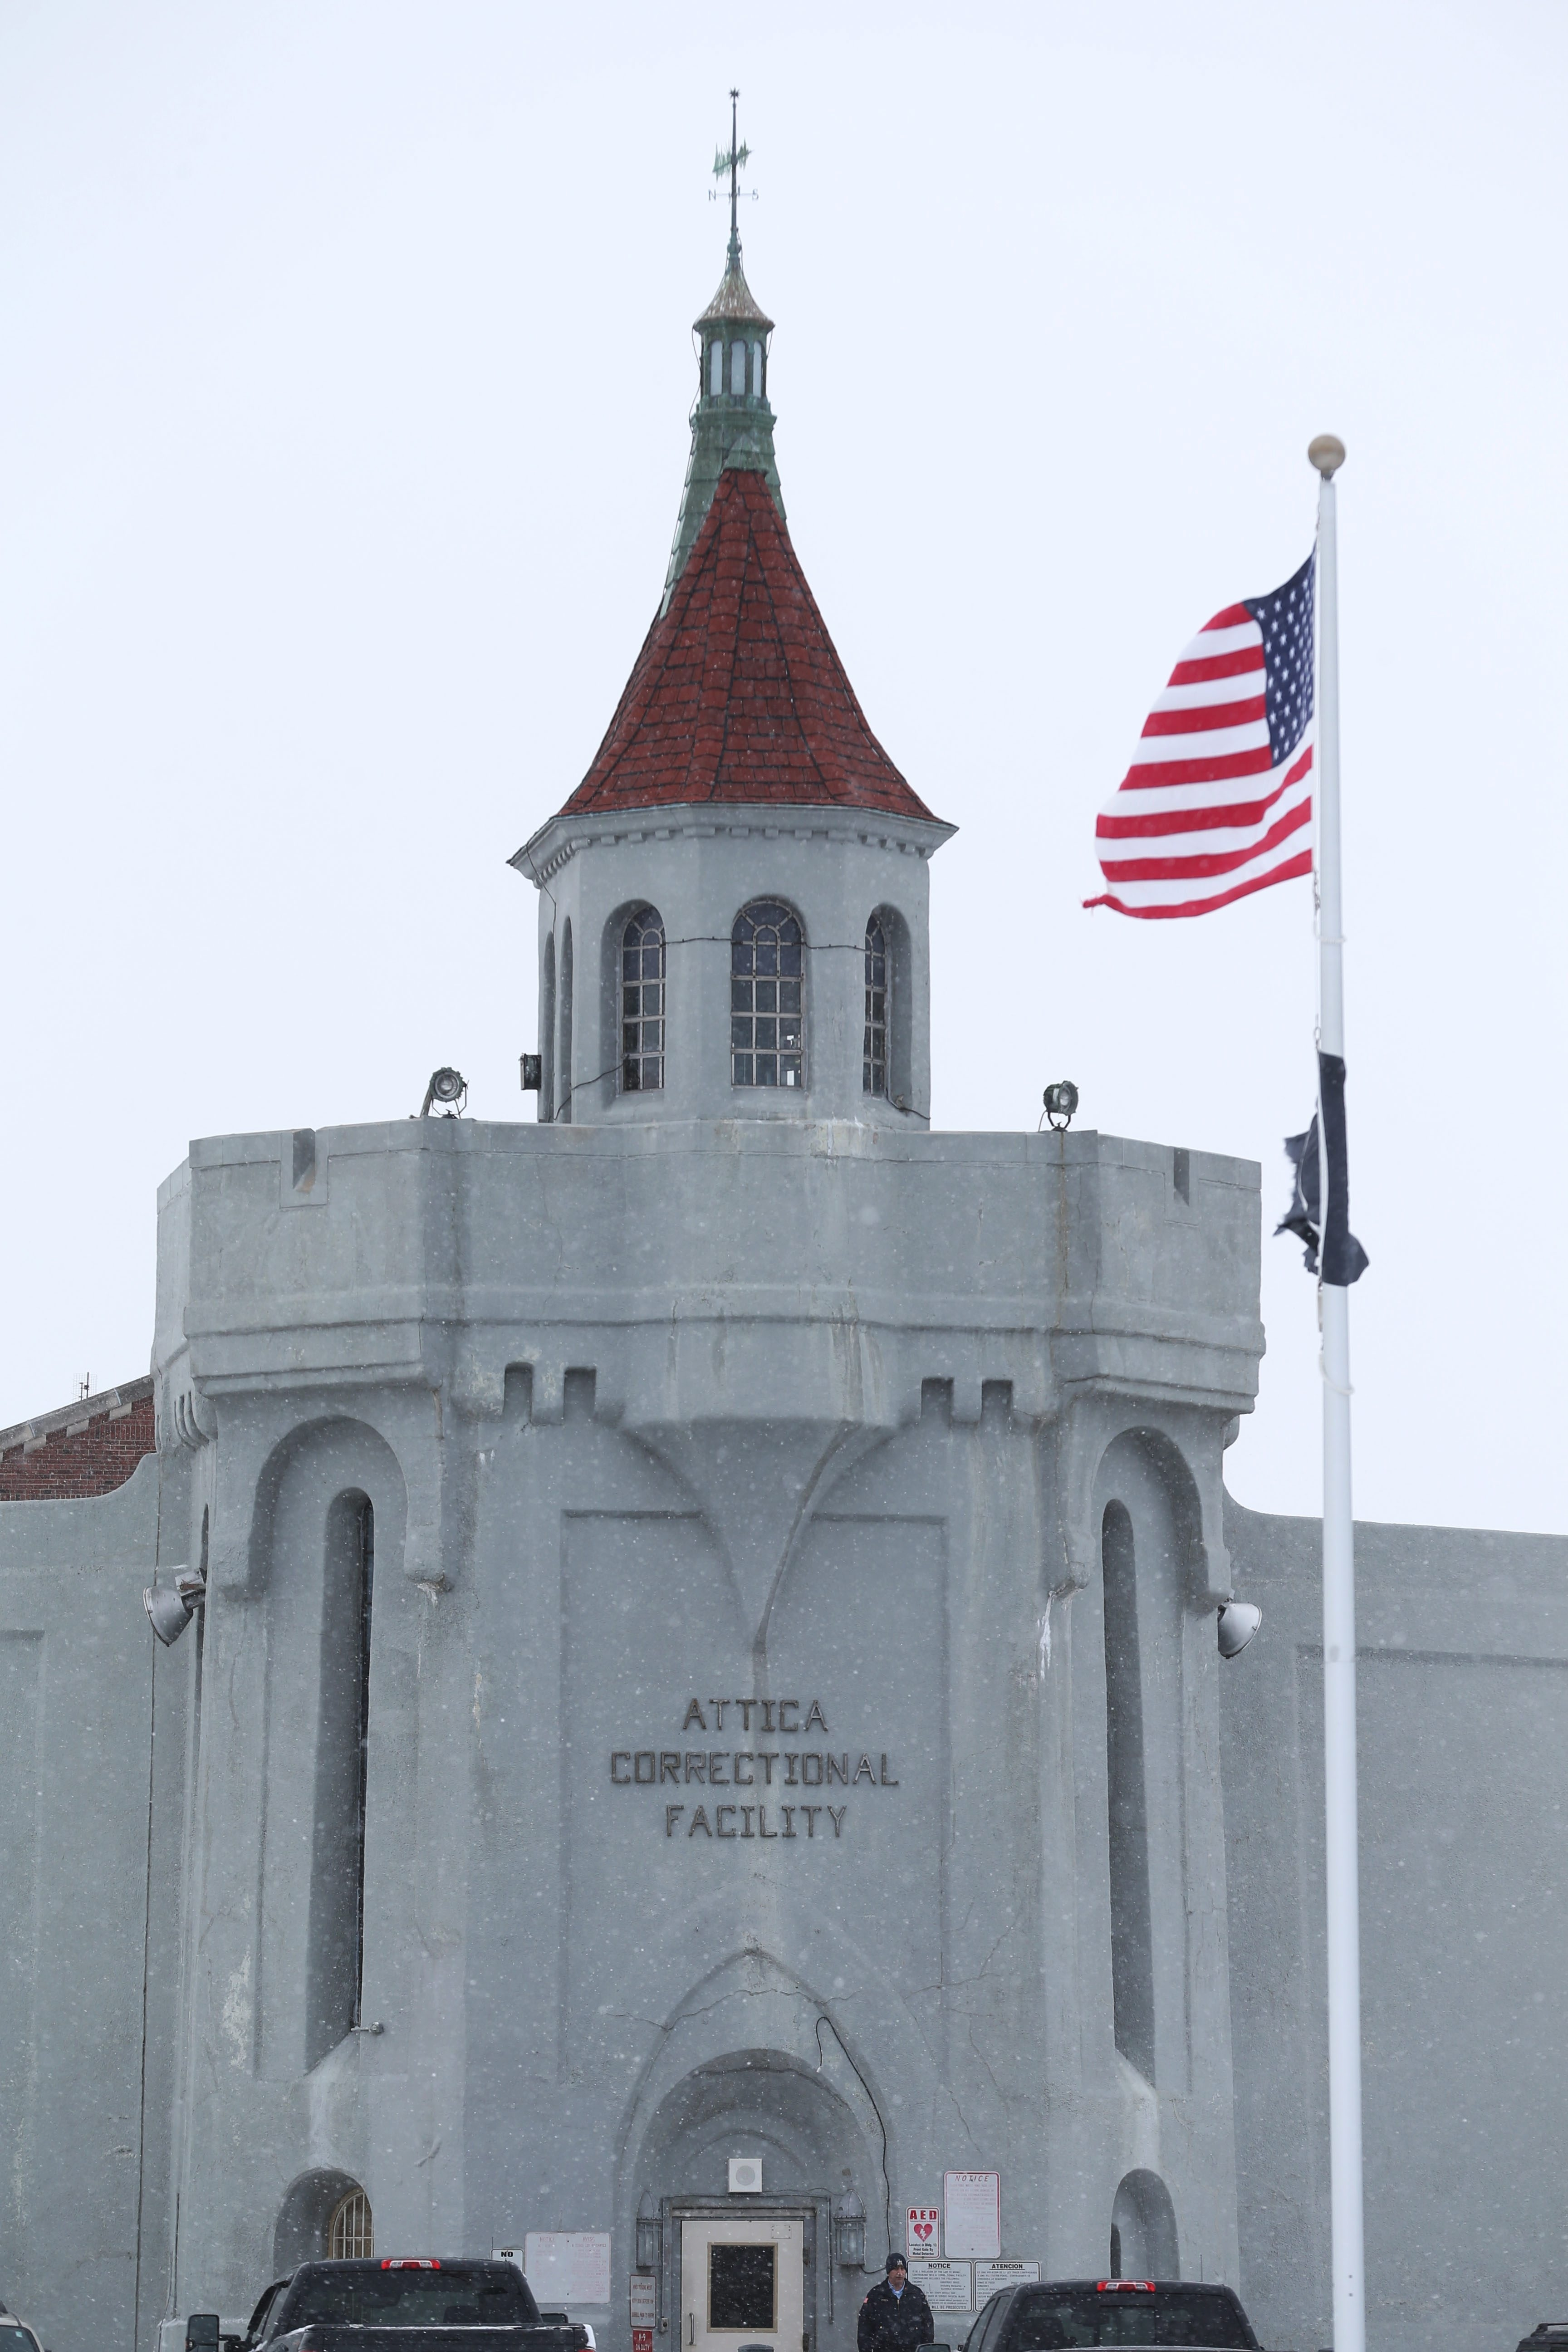 100 Things Every Western New Yorker Should Do Once: See Attica State Prison